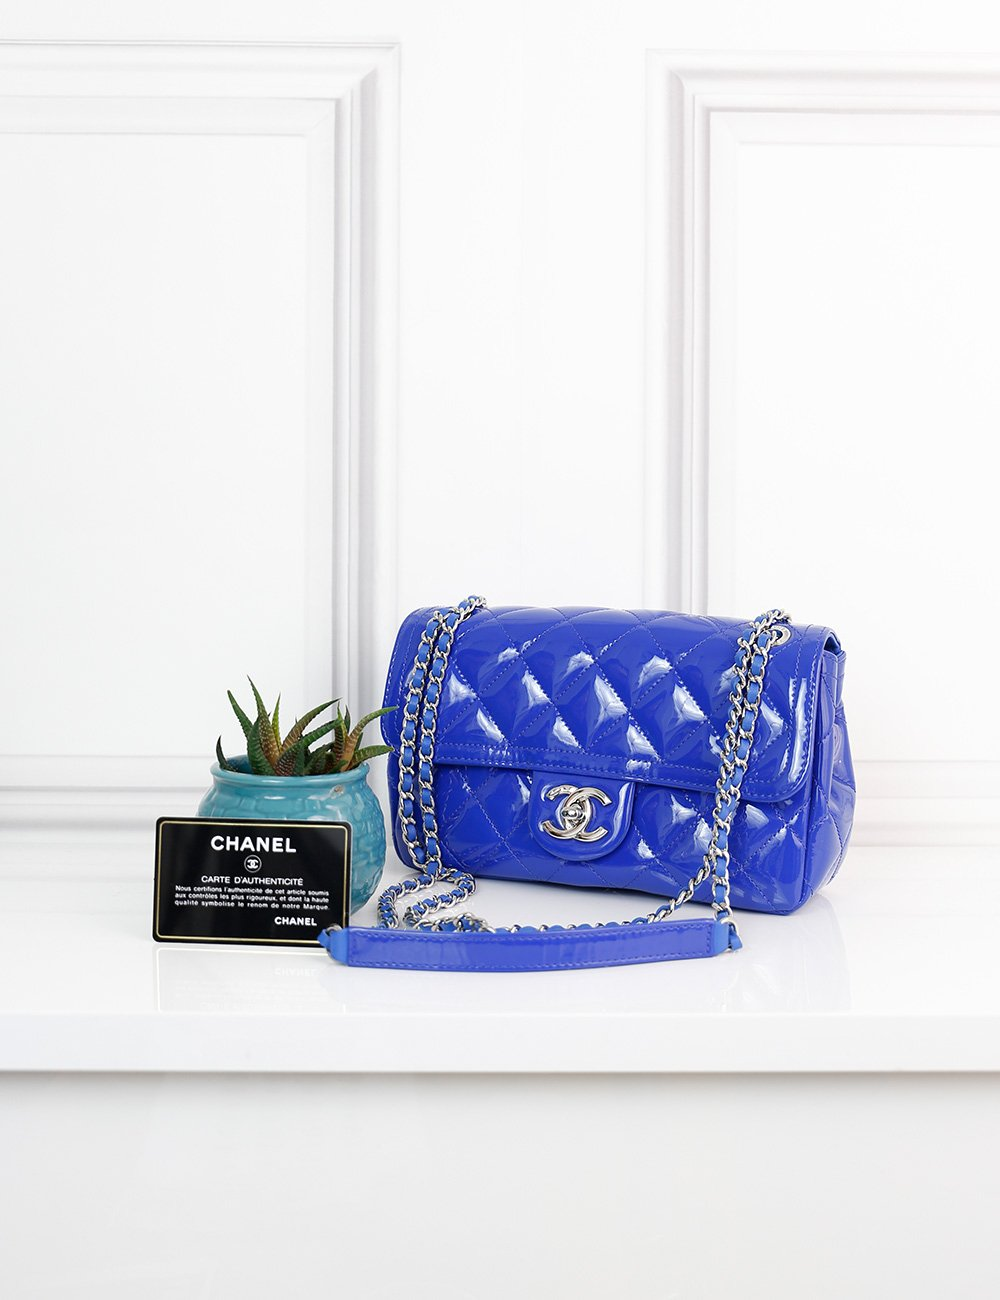 CHANEL BAGS One size / Electric blue CHANEL Coco Shine Flap Small Bag